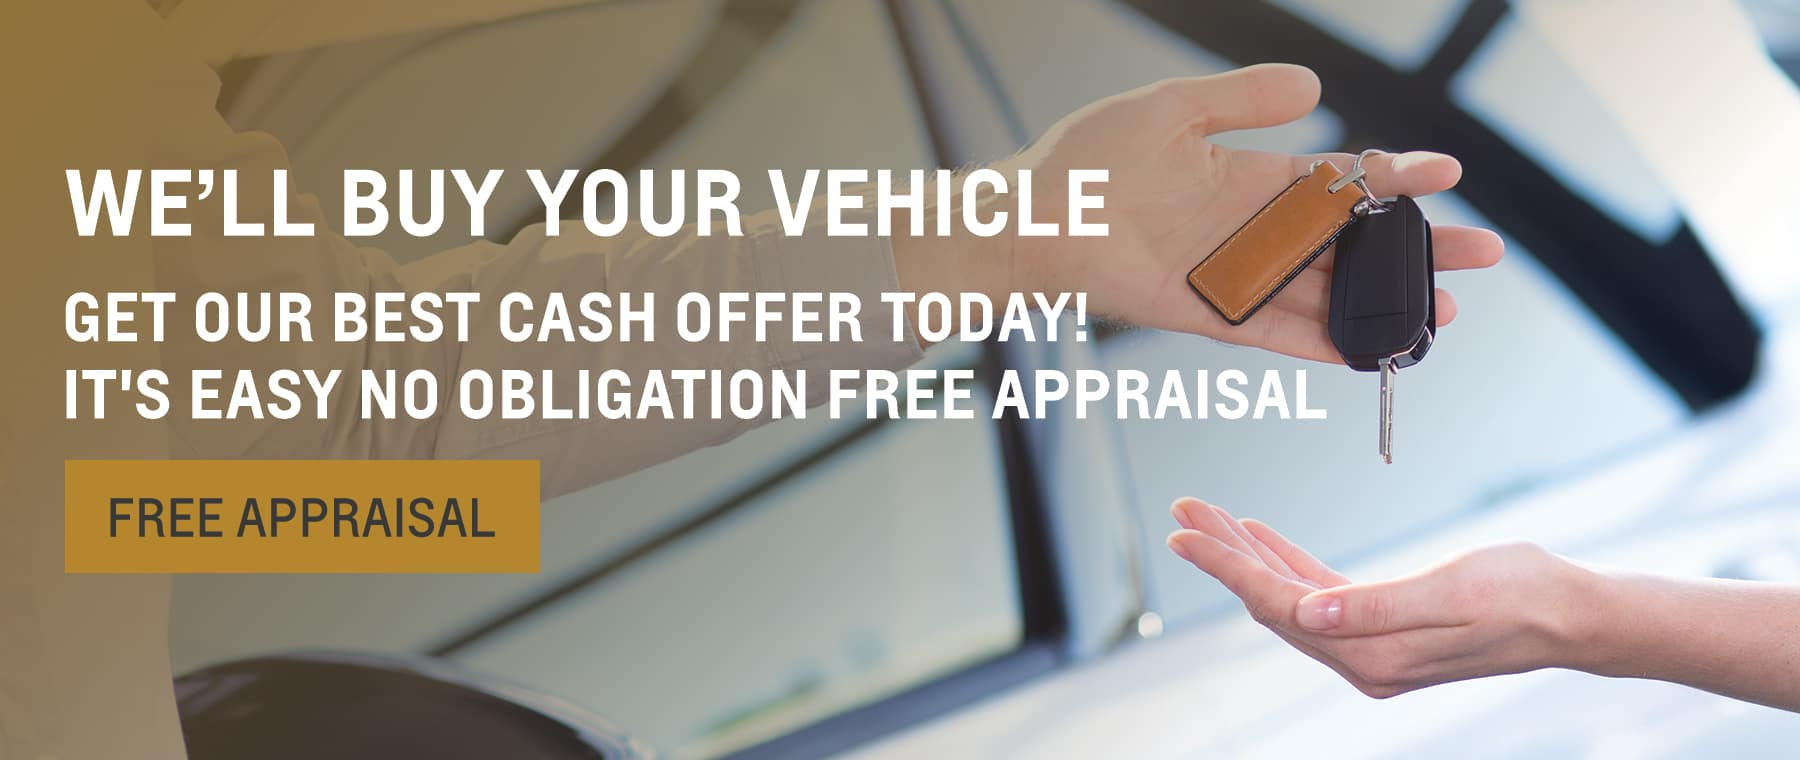 We'll Buy Your Vehicle. Get our Best Cash Offer Today! It's easy no obligation free appraisal